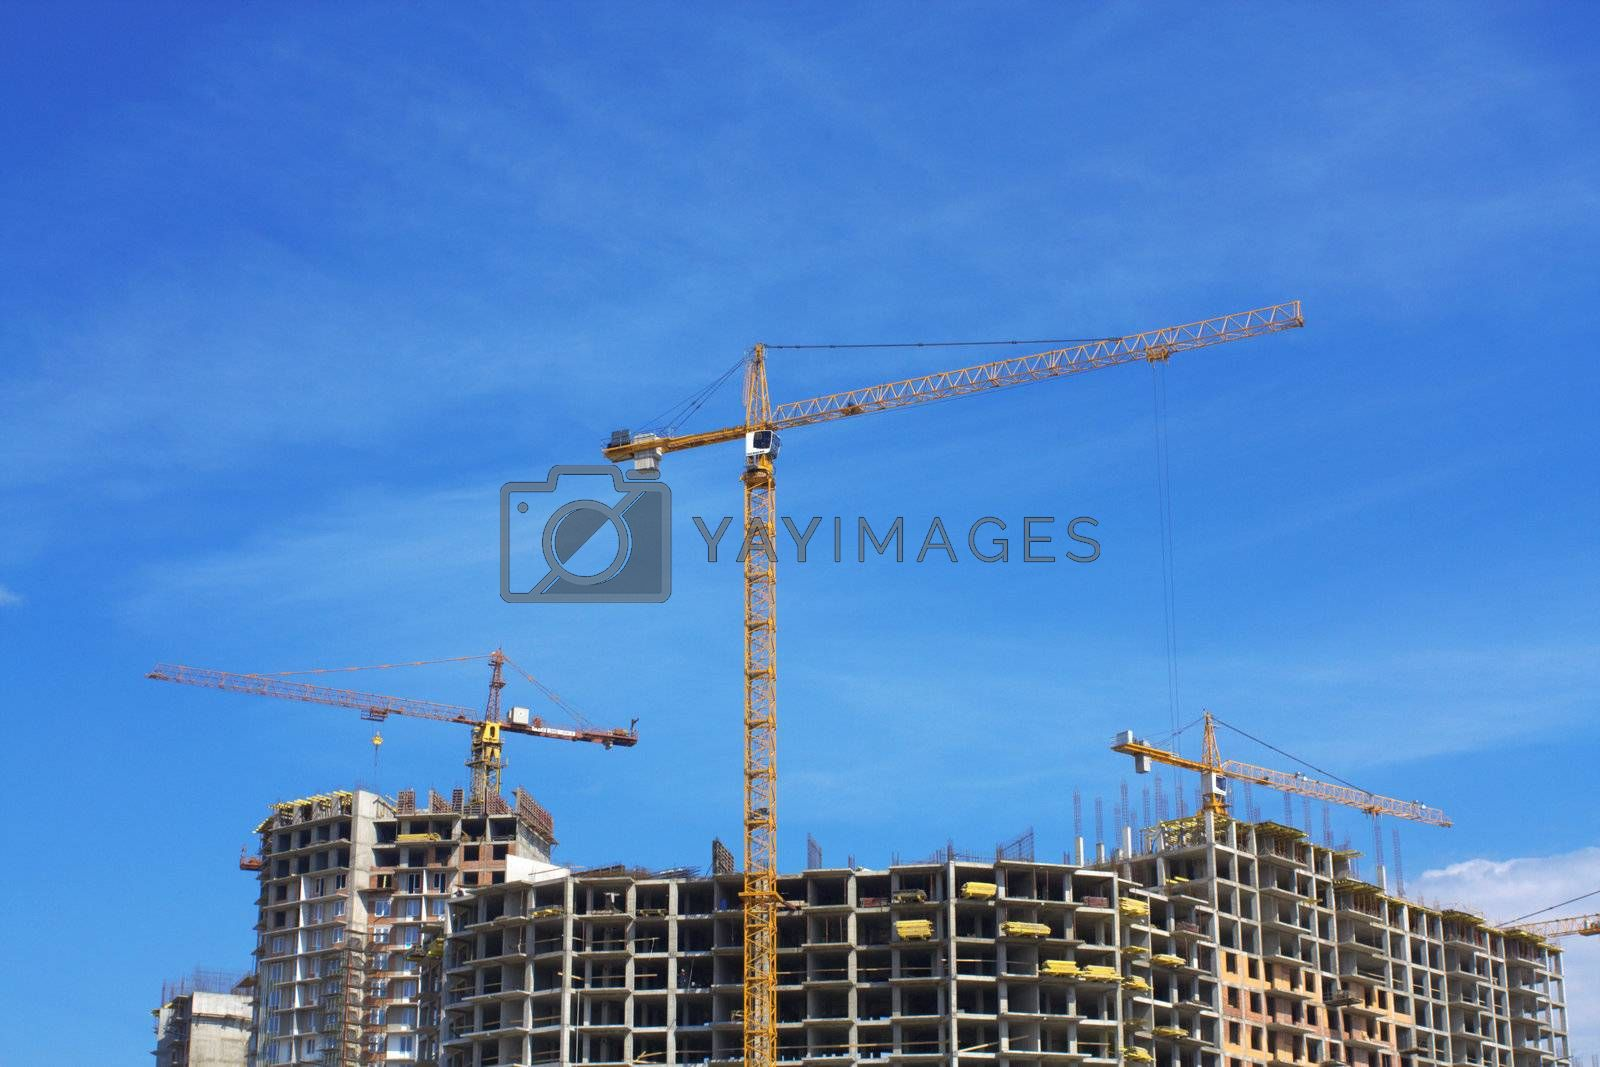 Cranes on sandy I protect under the blue sky. Construction of a complex of buildings